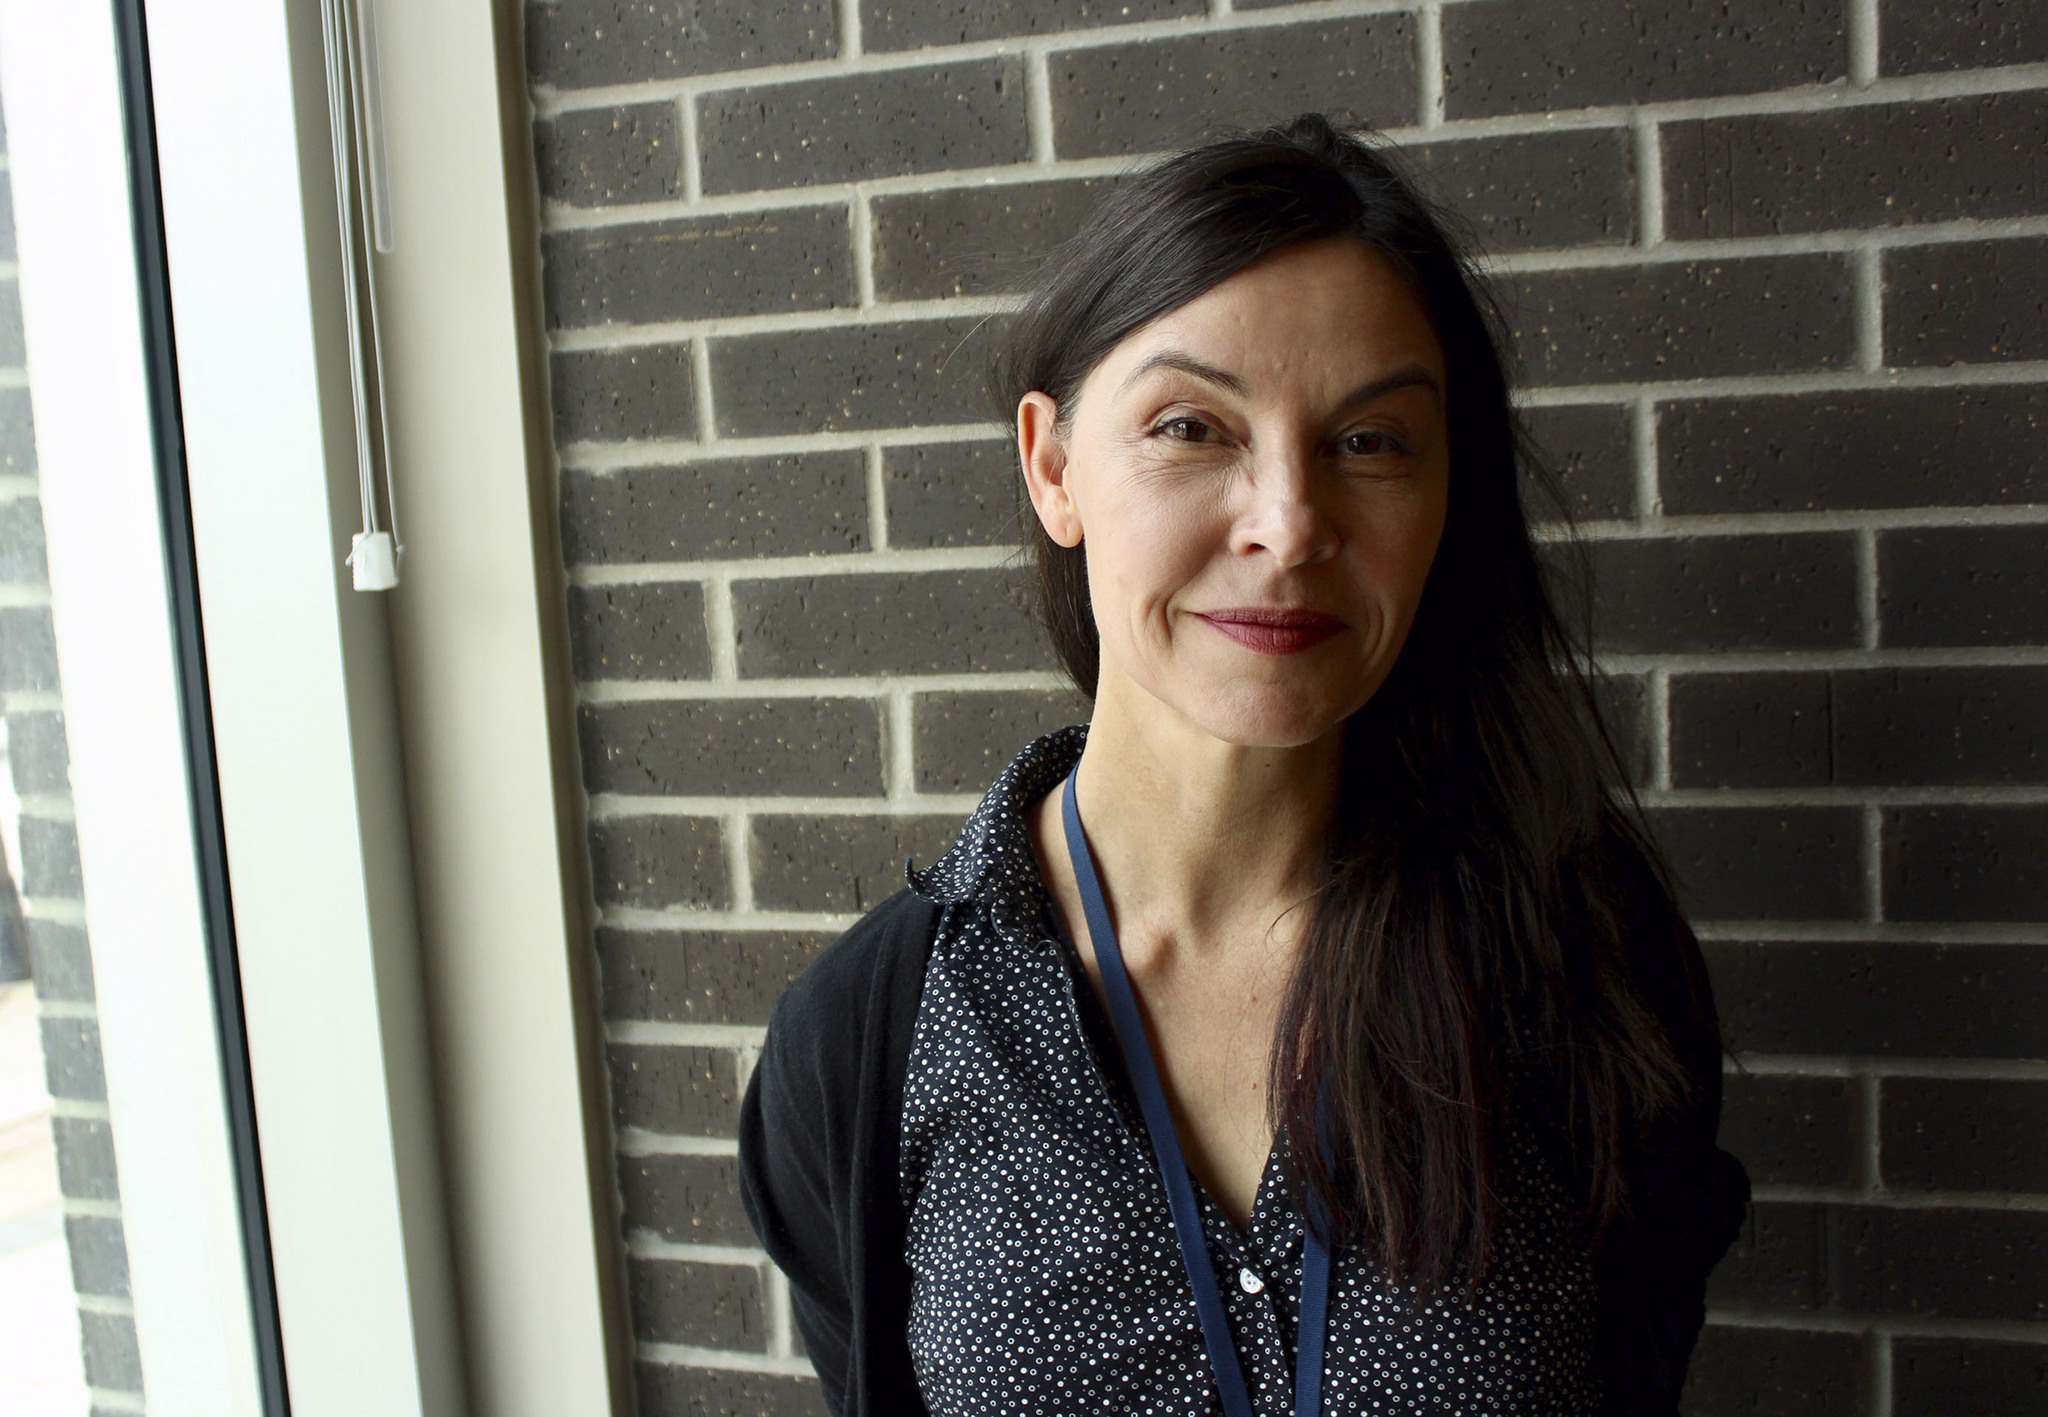 Shelley Marshall, a clinical nurse with the WRHA, says the study will reach out to people with addictions who might use a safe-consumption site. (Jessica Botelho-Urbanski / Winnipeg Free Press)</p>